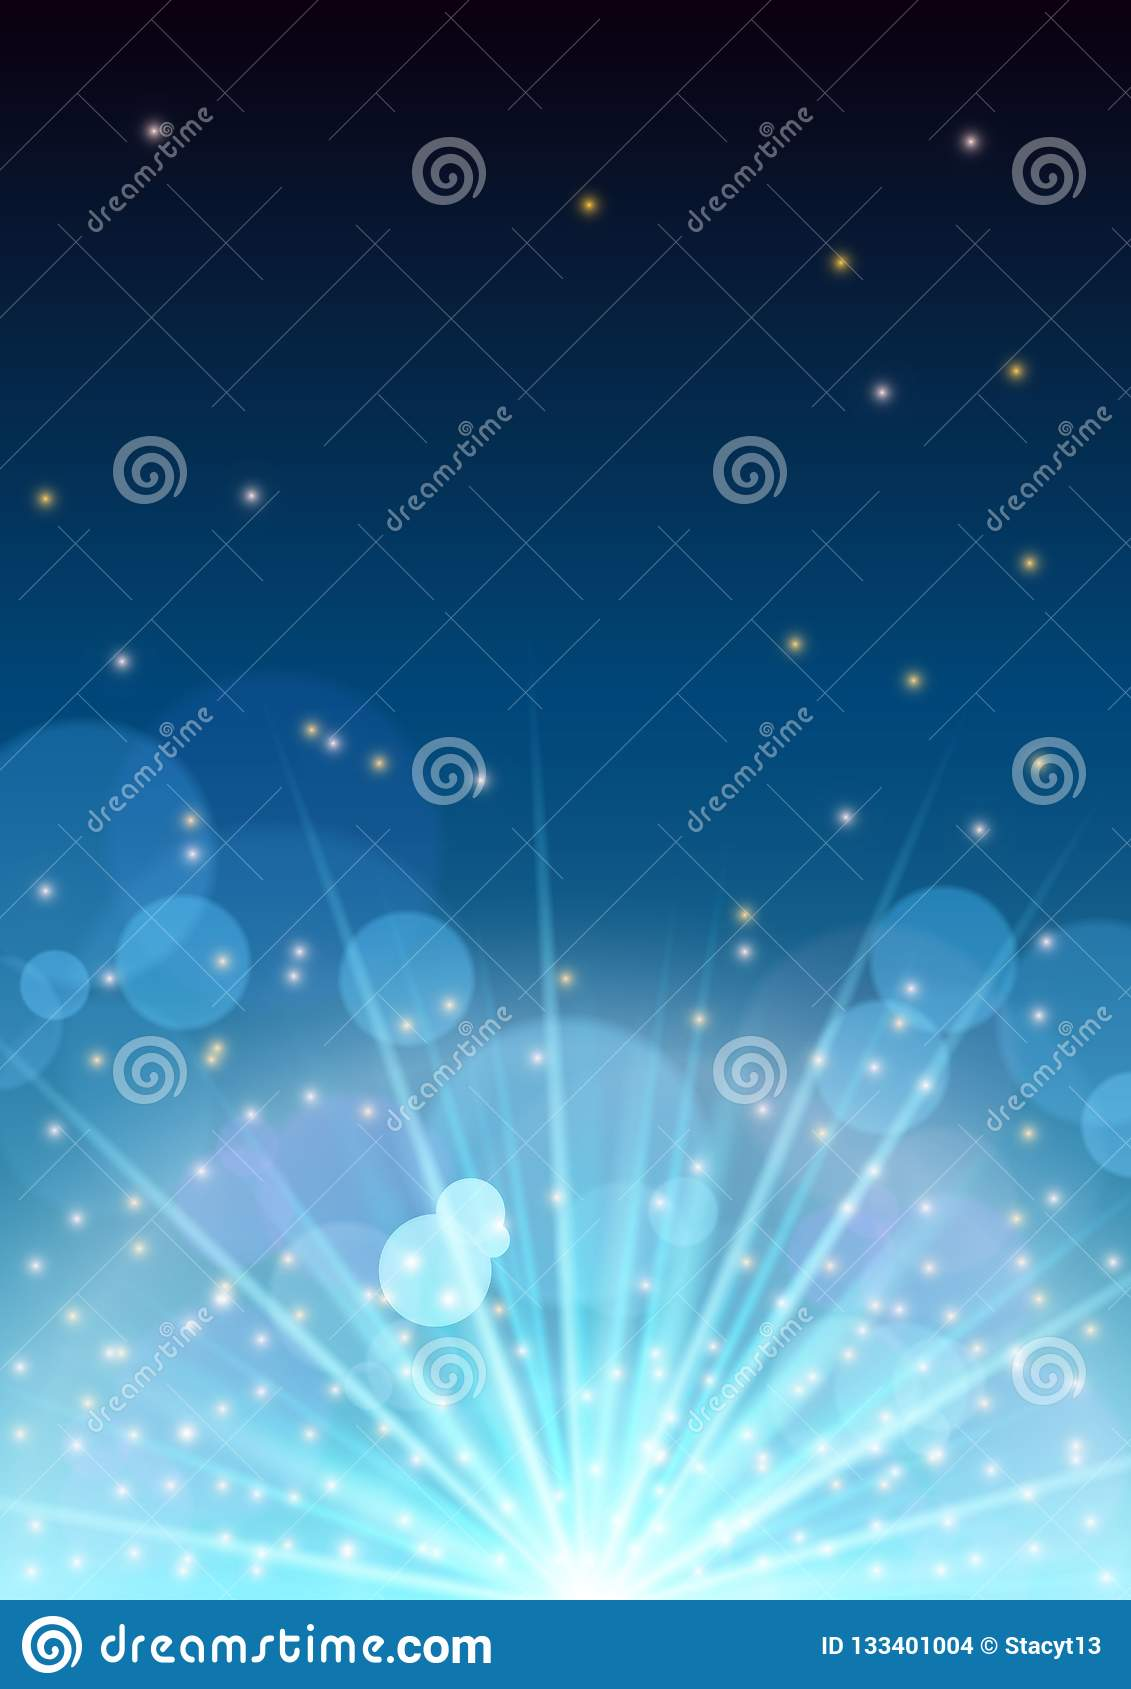 New Year banner flyer concept with firework flare,glowing stars,light flashes,highlight circles,christmas background